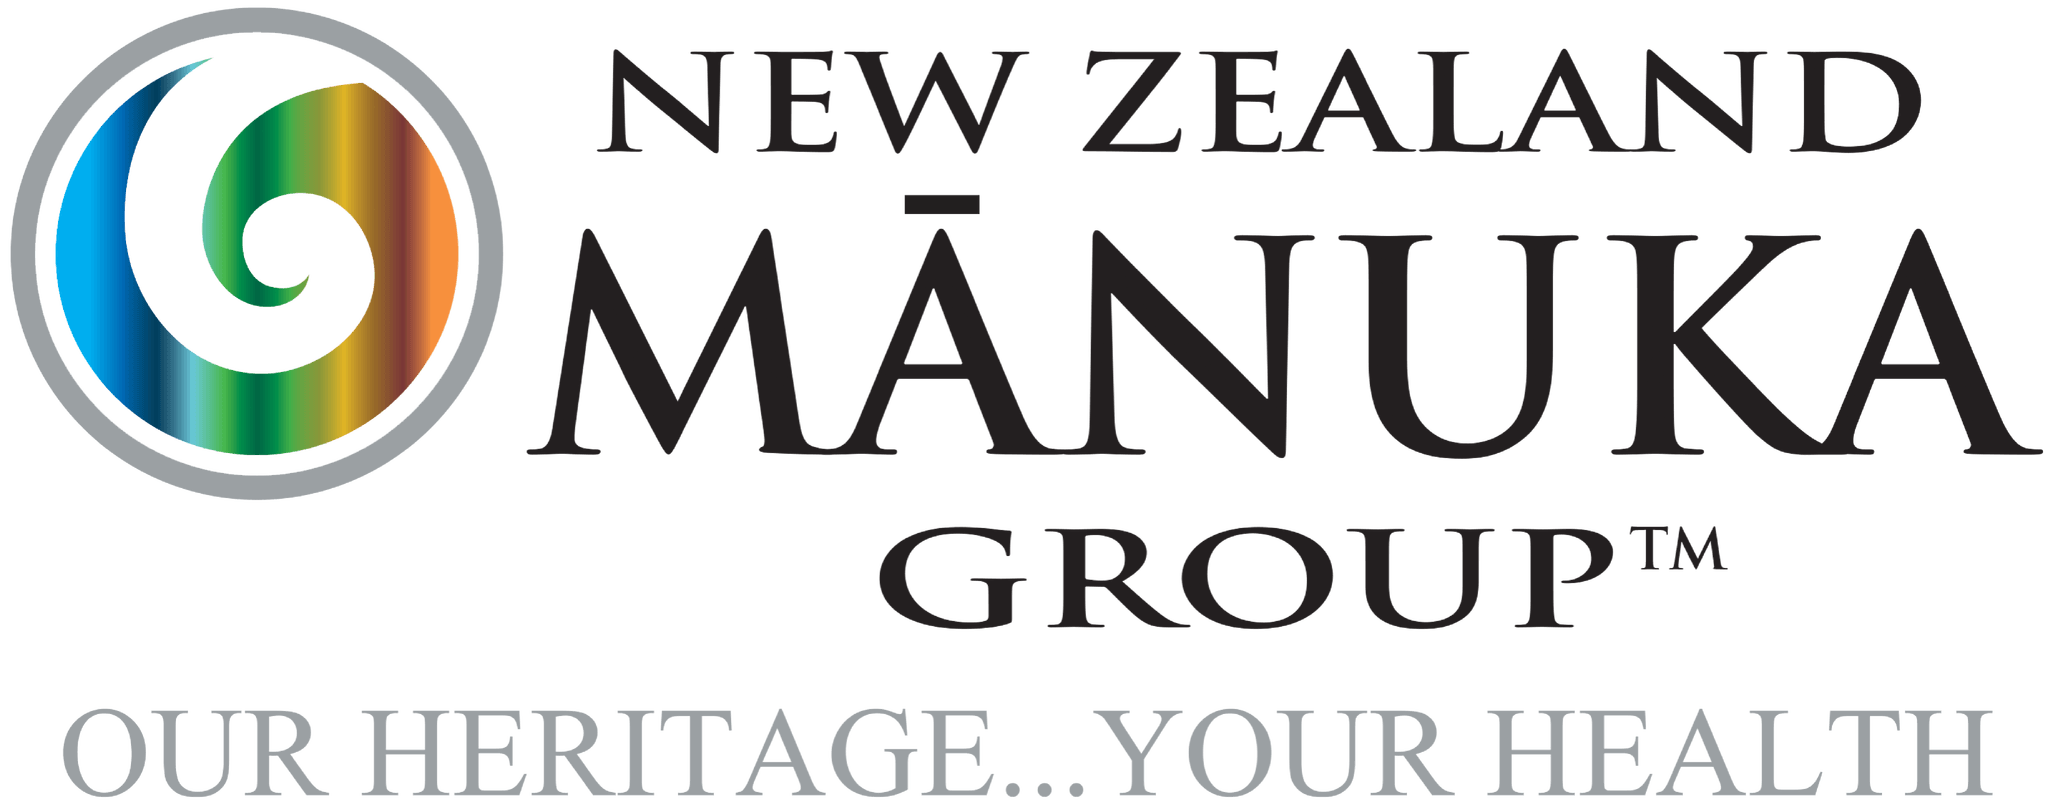 New Zealand Manuka Group Europe